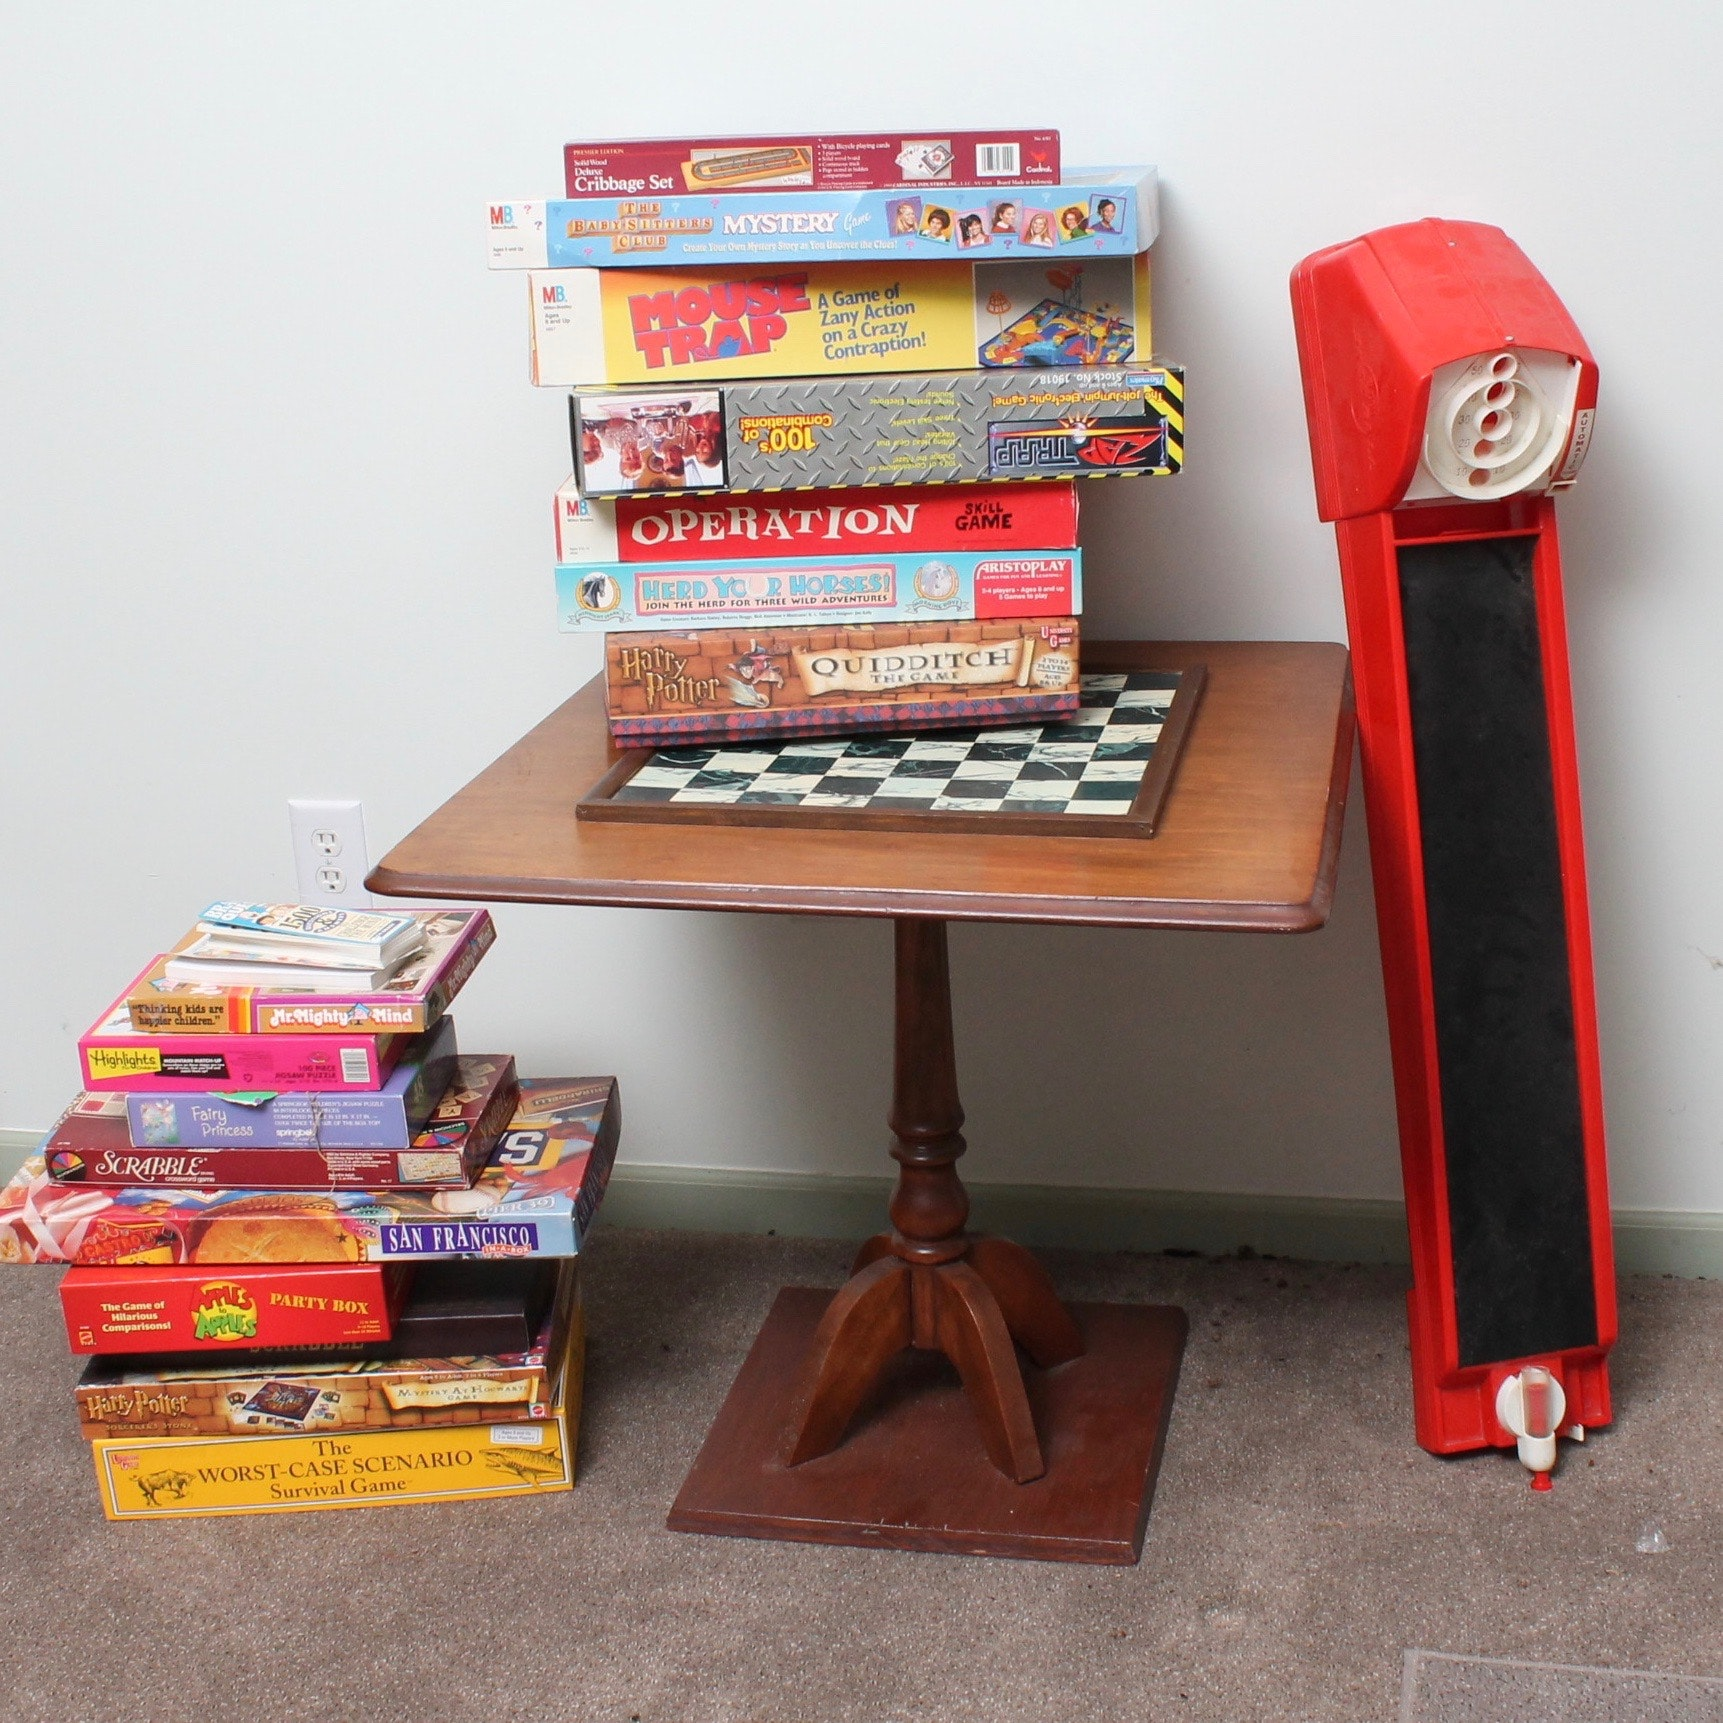 Board Games with Chess Table and Miniature Skee-Ball